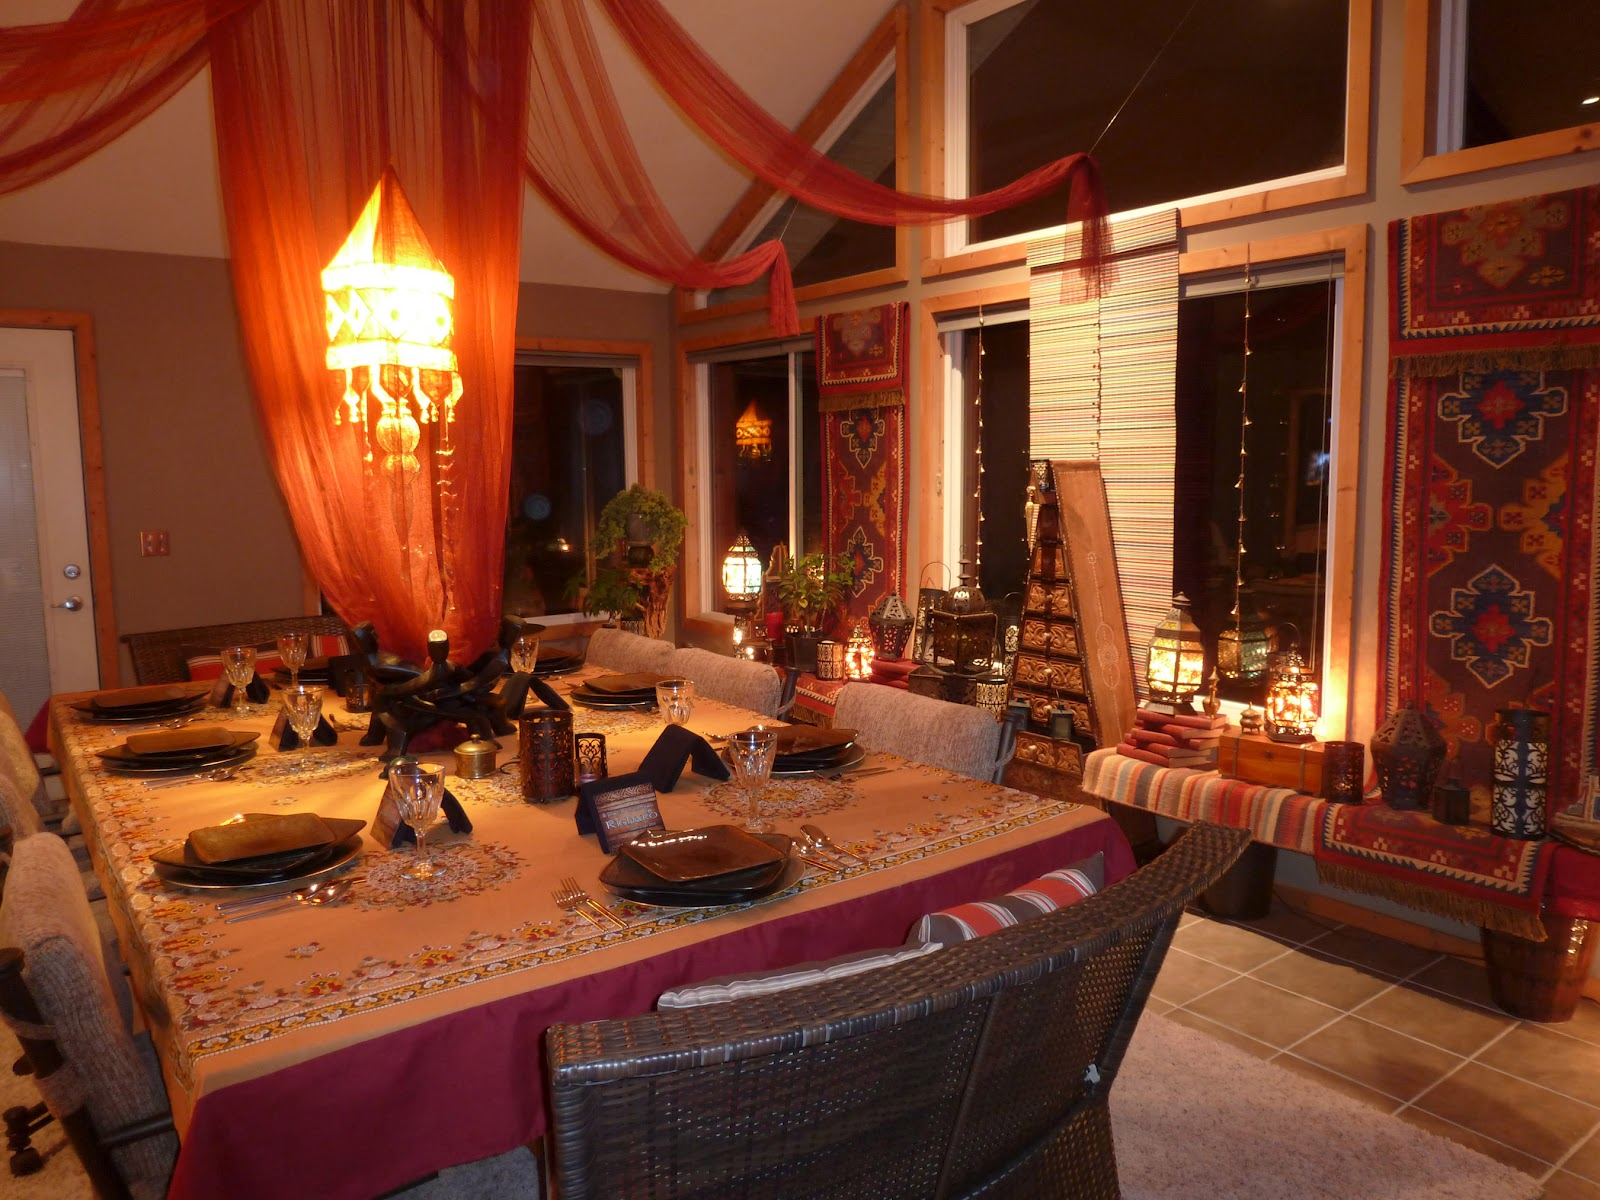 Moroccan Dining Room 33 Moroccan Dining Room Designs  Home Design Ideas Diy Interior